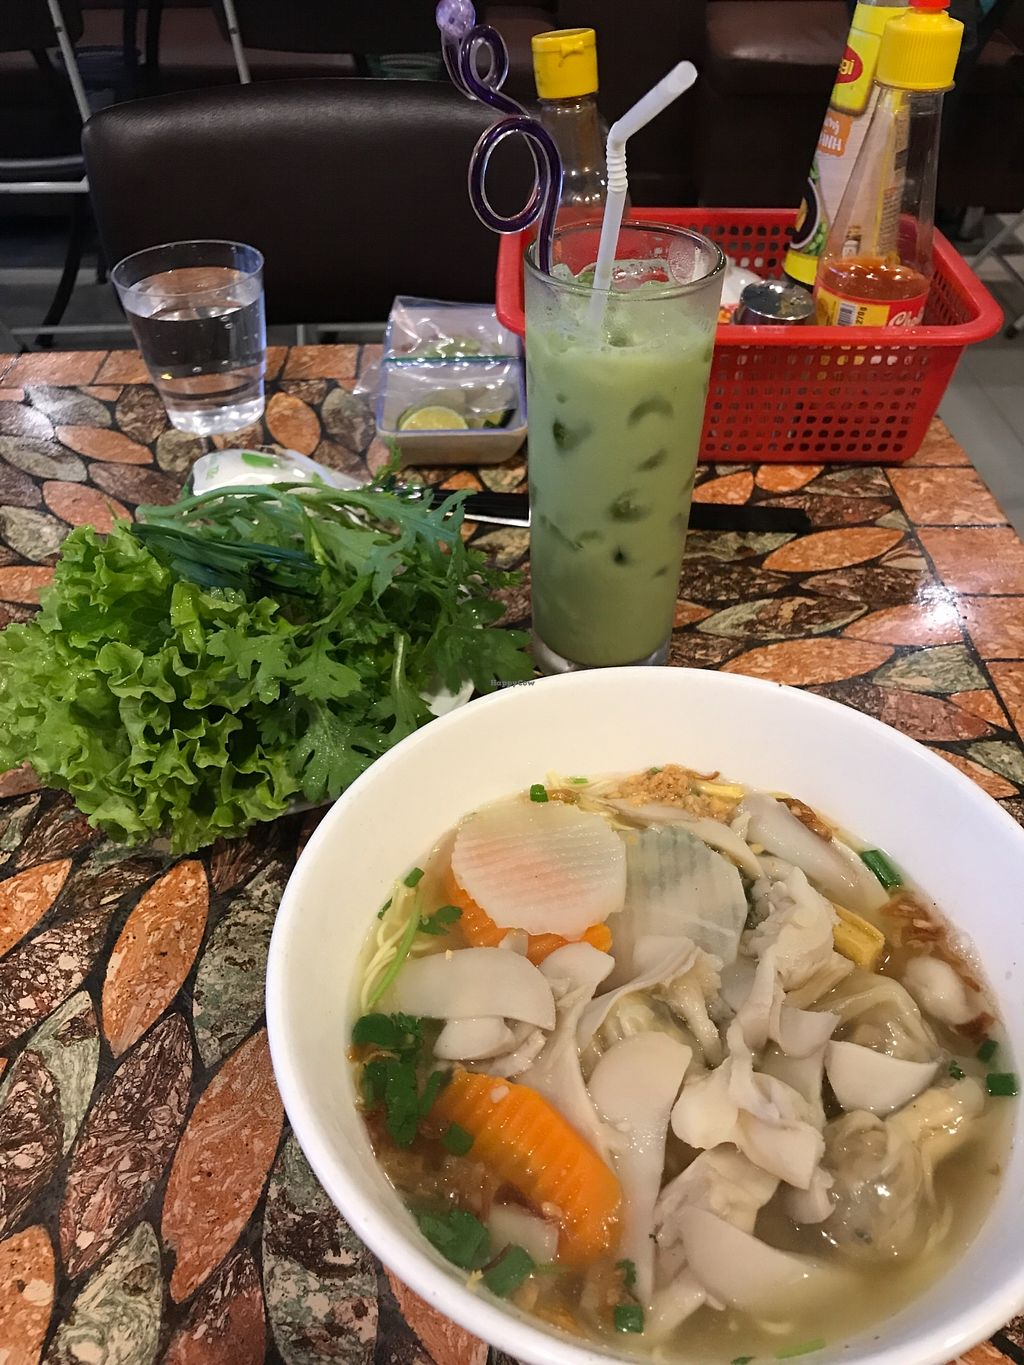 """Photo of Mani  by <a href=""""/members/profile/theNumberOfTheBeast"""">theNumberOfTheBeast</a> <br/>Wonton Soup <br/> December 26, 2017  - <a href='/contact/abuse/image/37908/339107'>Report</a>"""